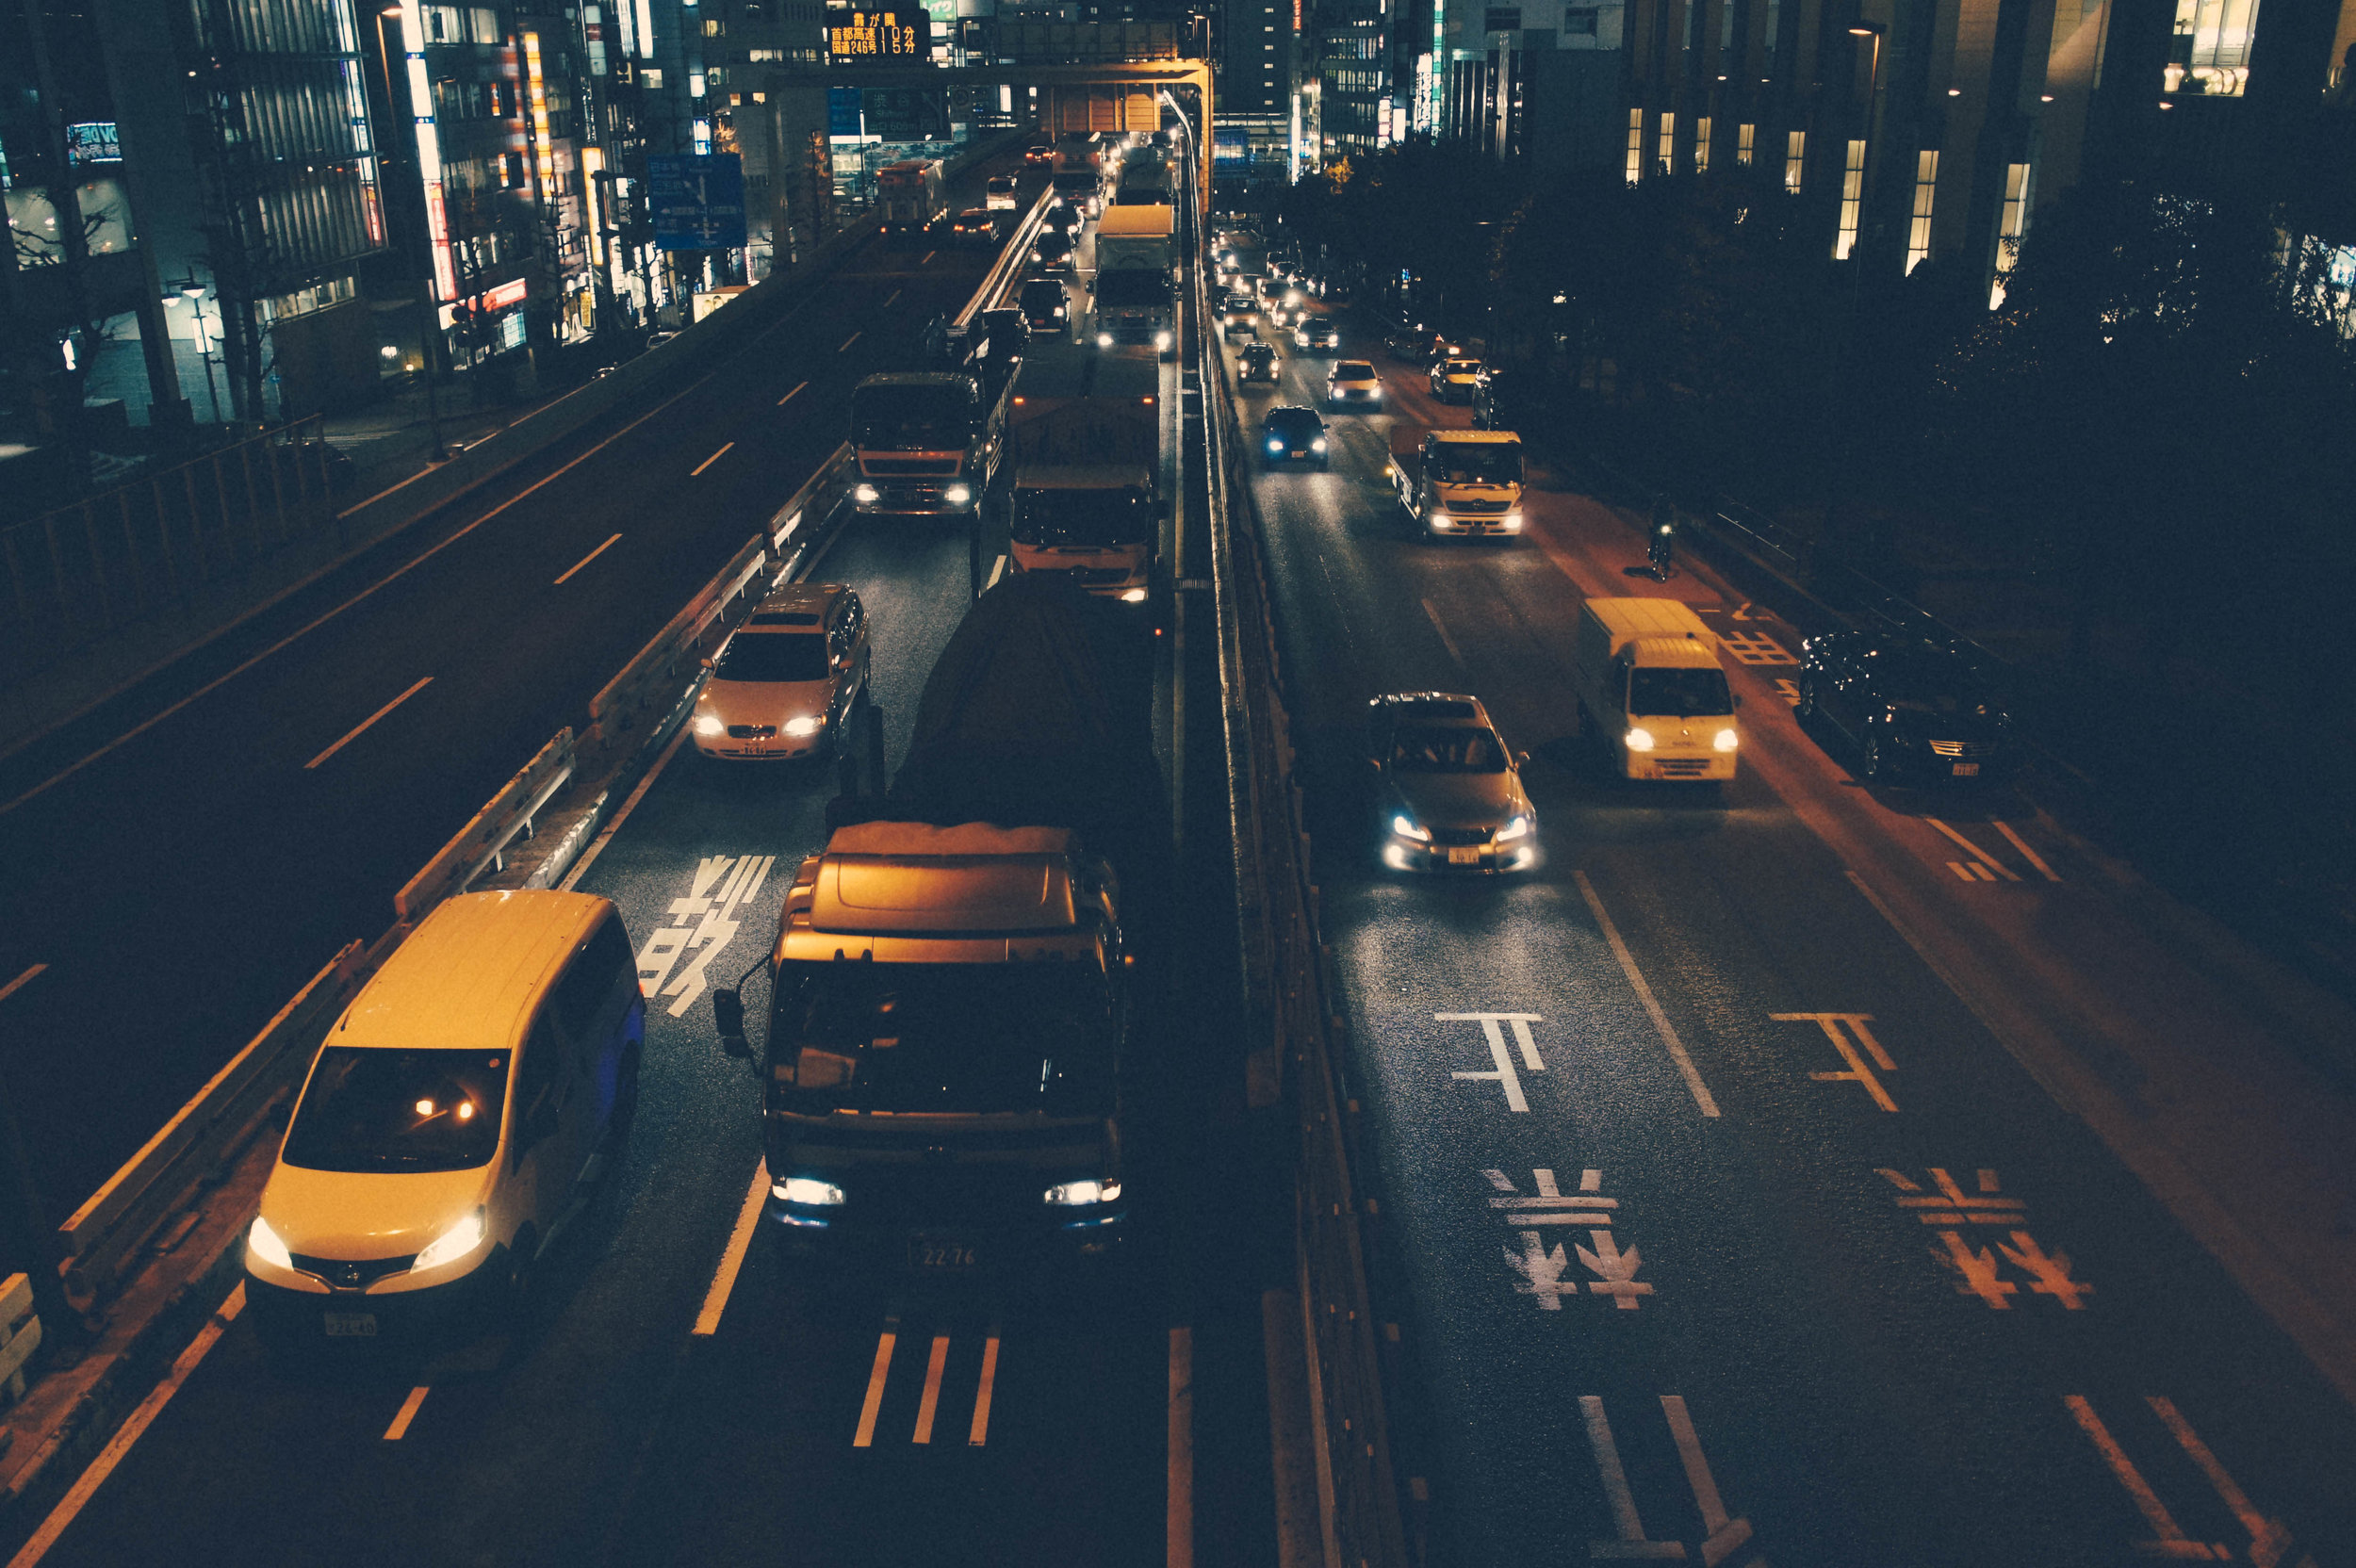 Run facing traffic - Lots of people think you should run with the traffic but the advantage to running against traffic at night is that it's easier to see an oncoming car with its headlights on. By running in the direction of traffic, you can move off the road quickly if a car swerves in your direction.